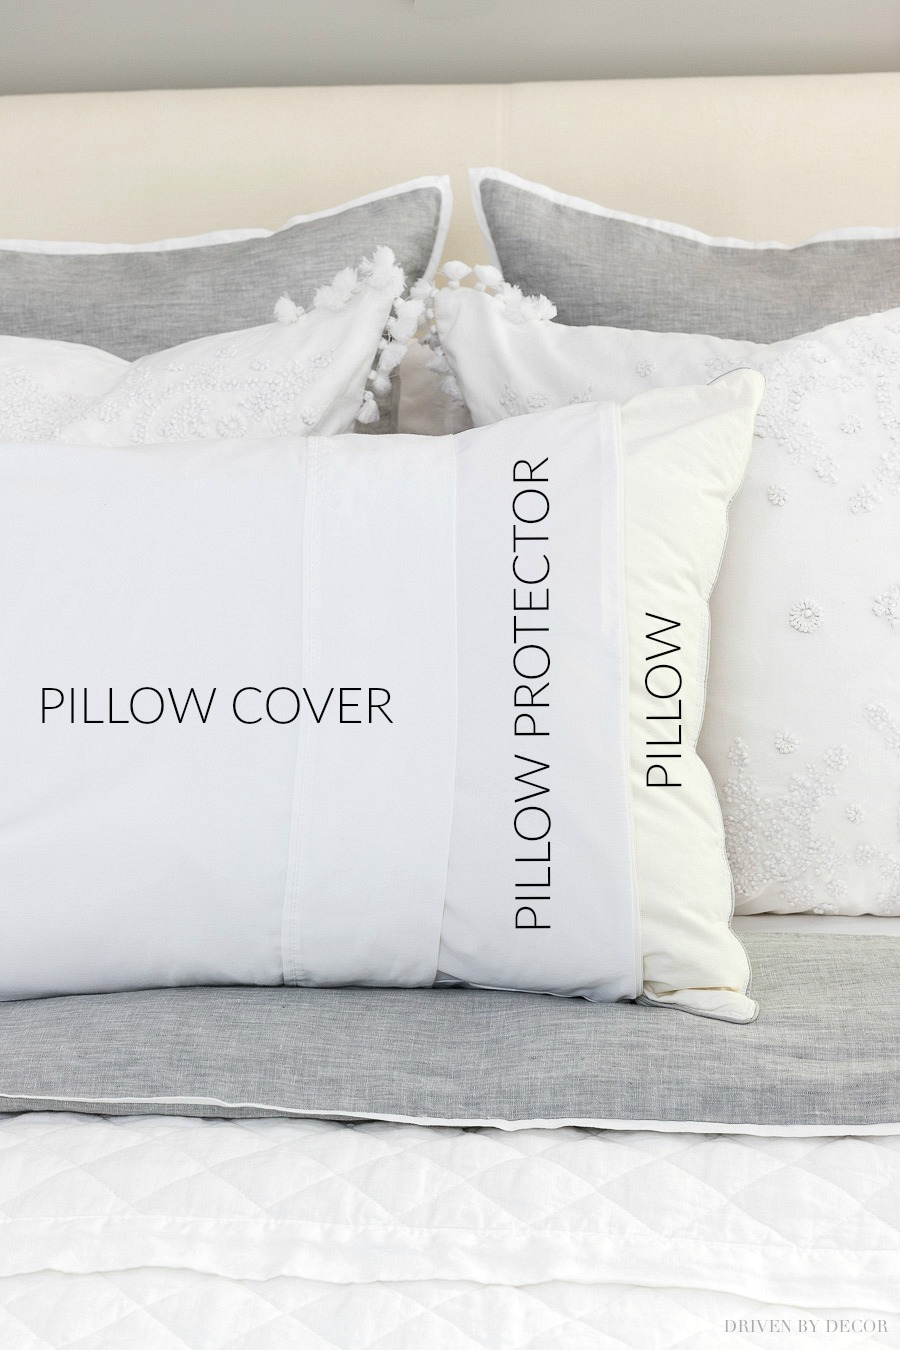 So many great guest bedding tips in this post - love the idea of using zippered pillow protectors!